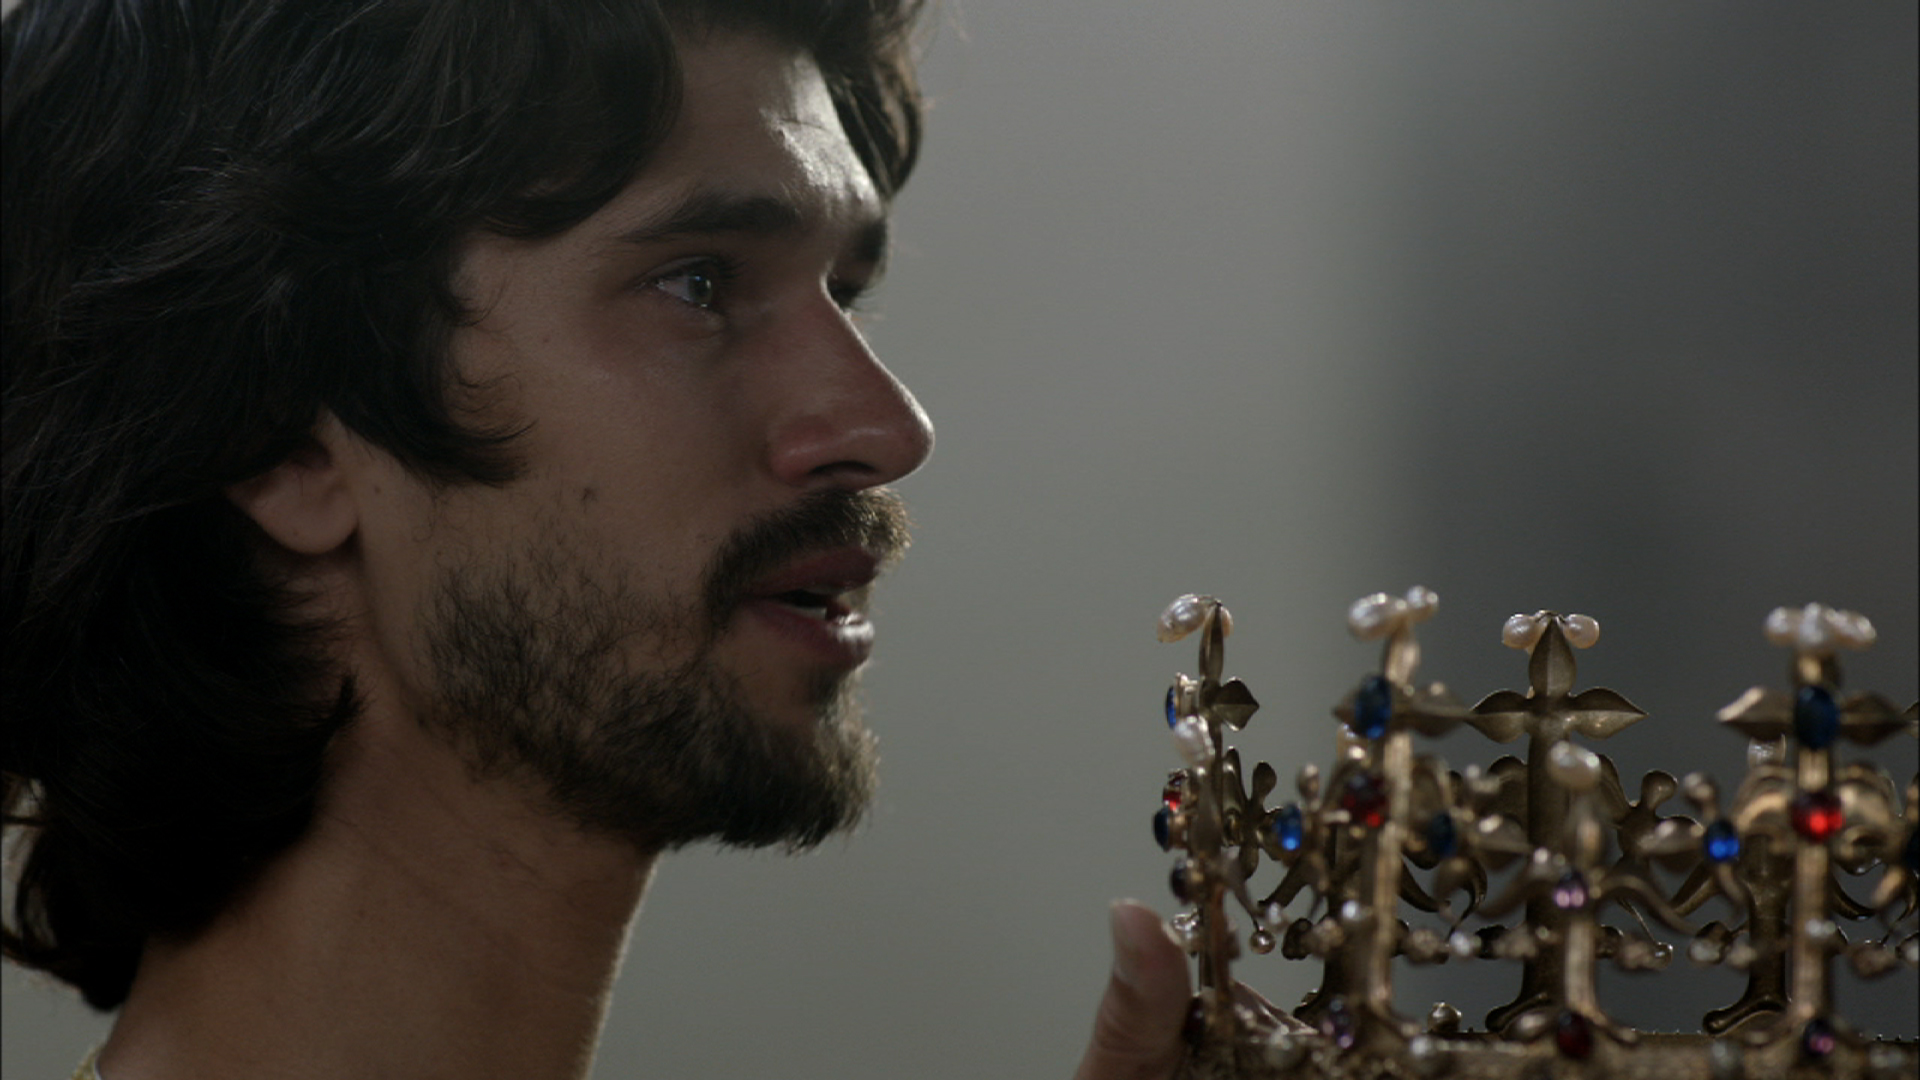 Richard II, as played by Ben Whishaw in 2012's The Hollow Crown|© BBC 2012